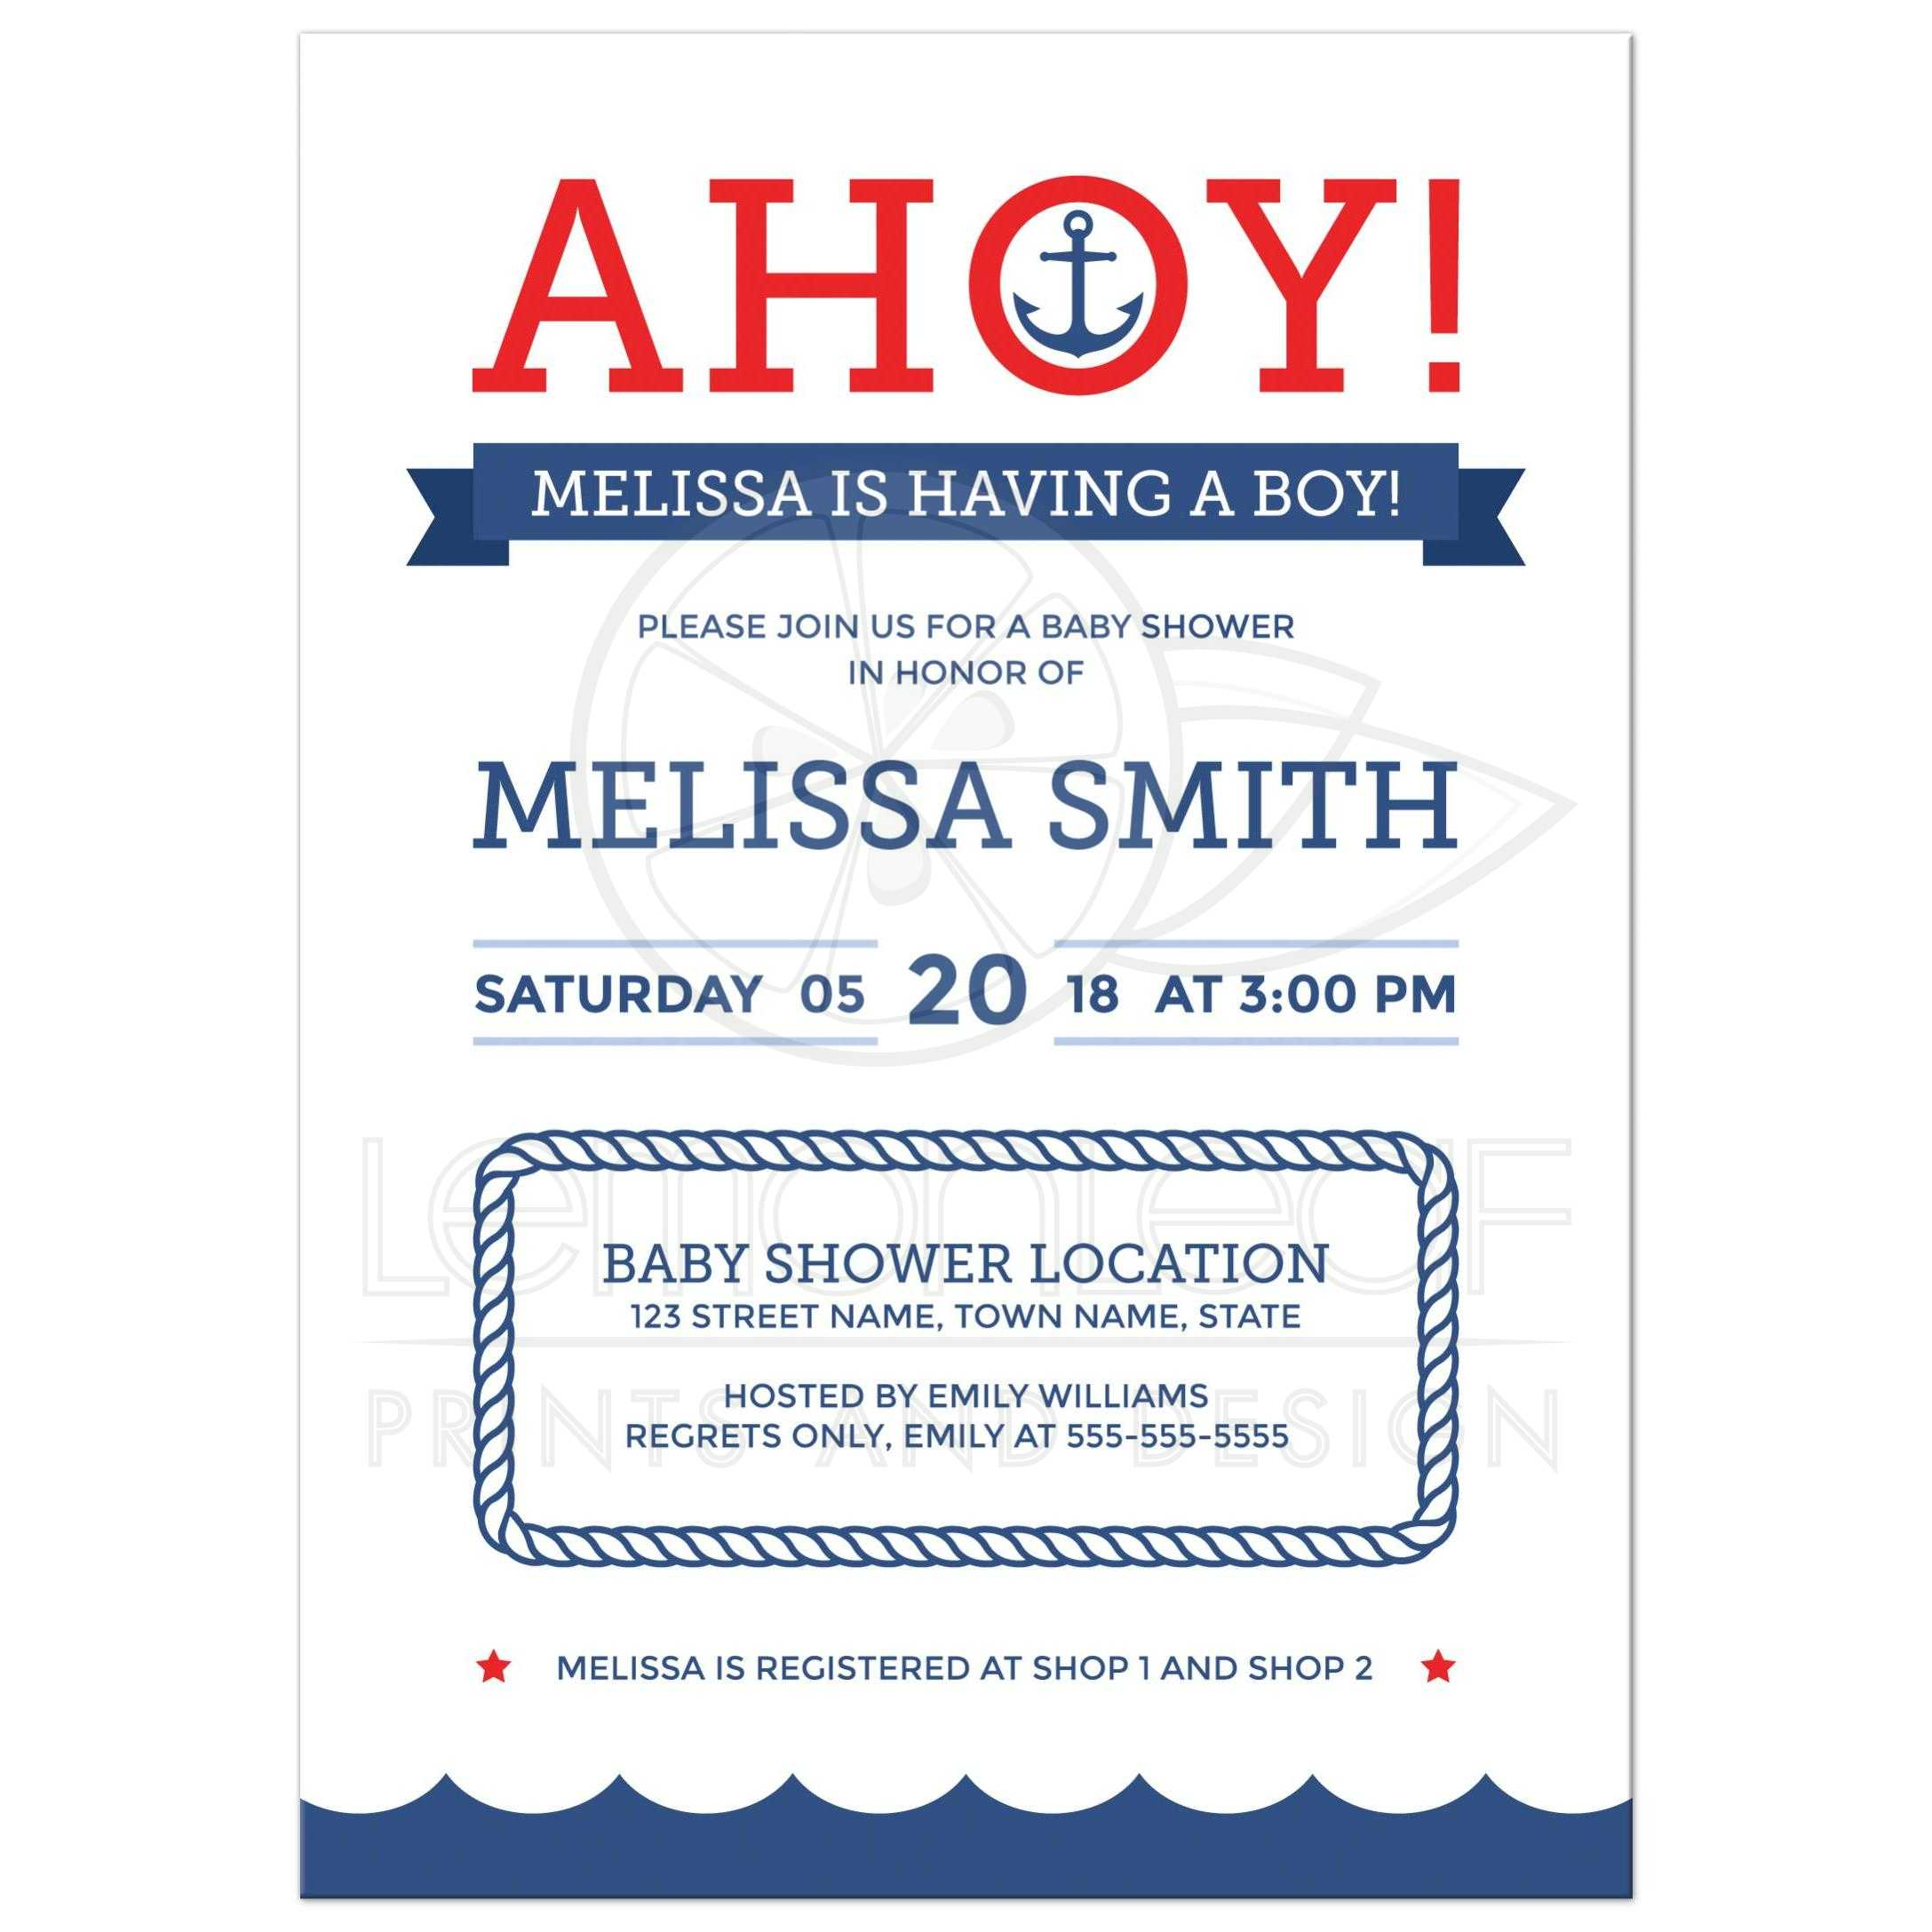 Ahoy nautical baby shower invitation with anchor | Red and blue ...